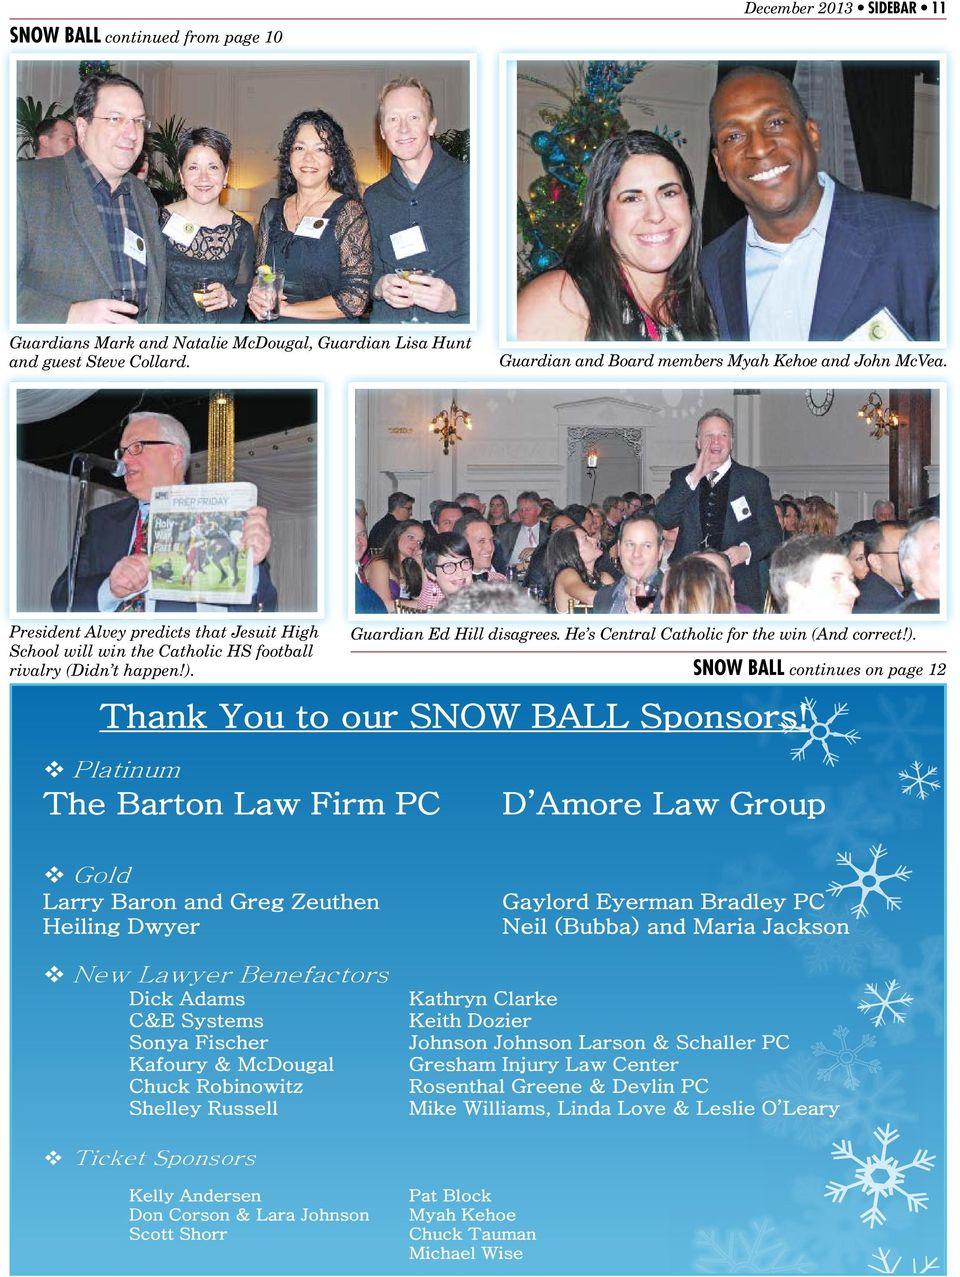 SNOW BALL continues on page 12 Platinum The Barton Law Firm PC D Amore Law Group Gold Larry Baron and Greg Zeuthen Heiling Dwyer Gaylord Eyerman Bradley PC Neil (Bubba) and Maria Jackson New Lawyer